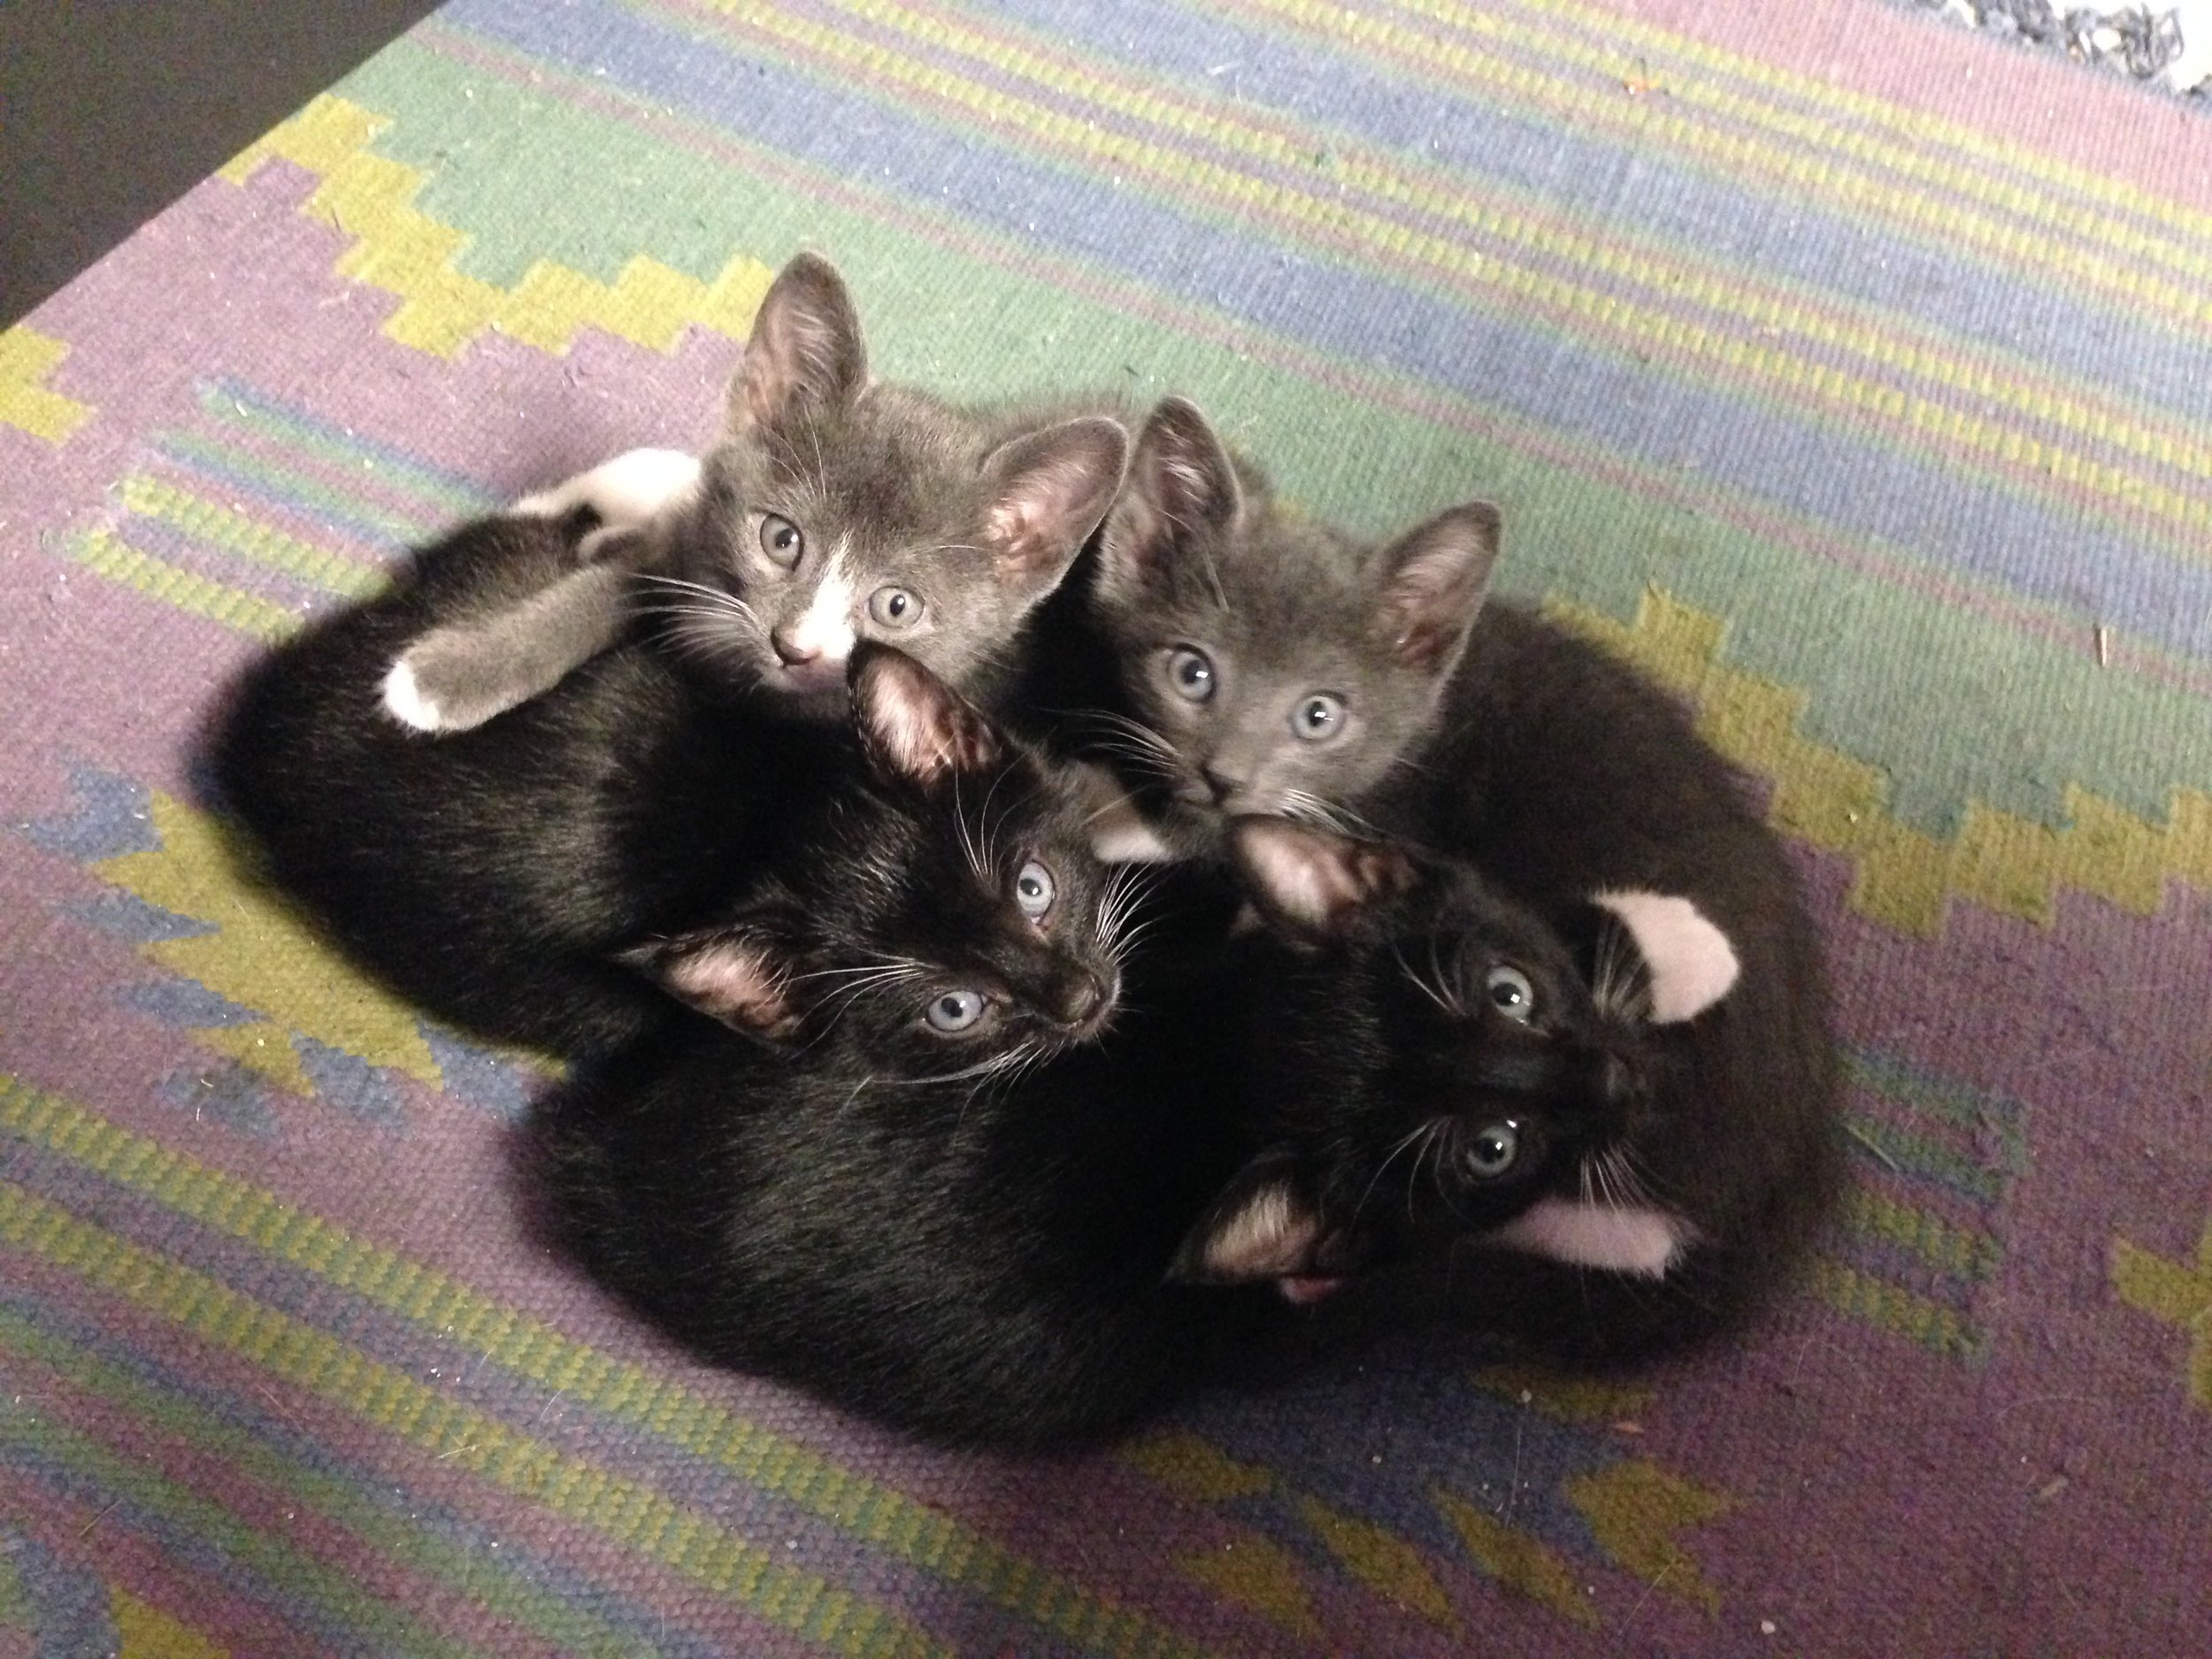 PowerSport office kittens need adopting, as of 10/10/16 still. Any takers? Let me know!